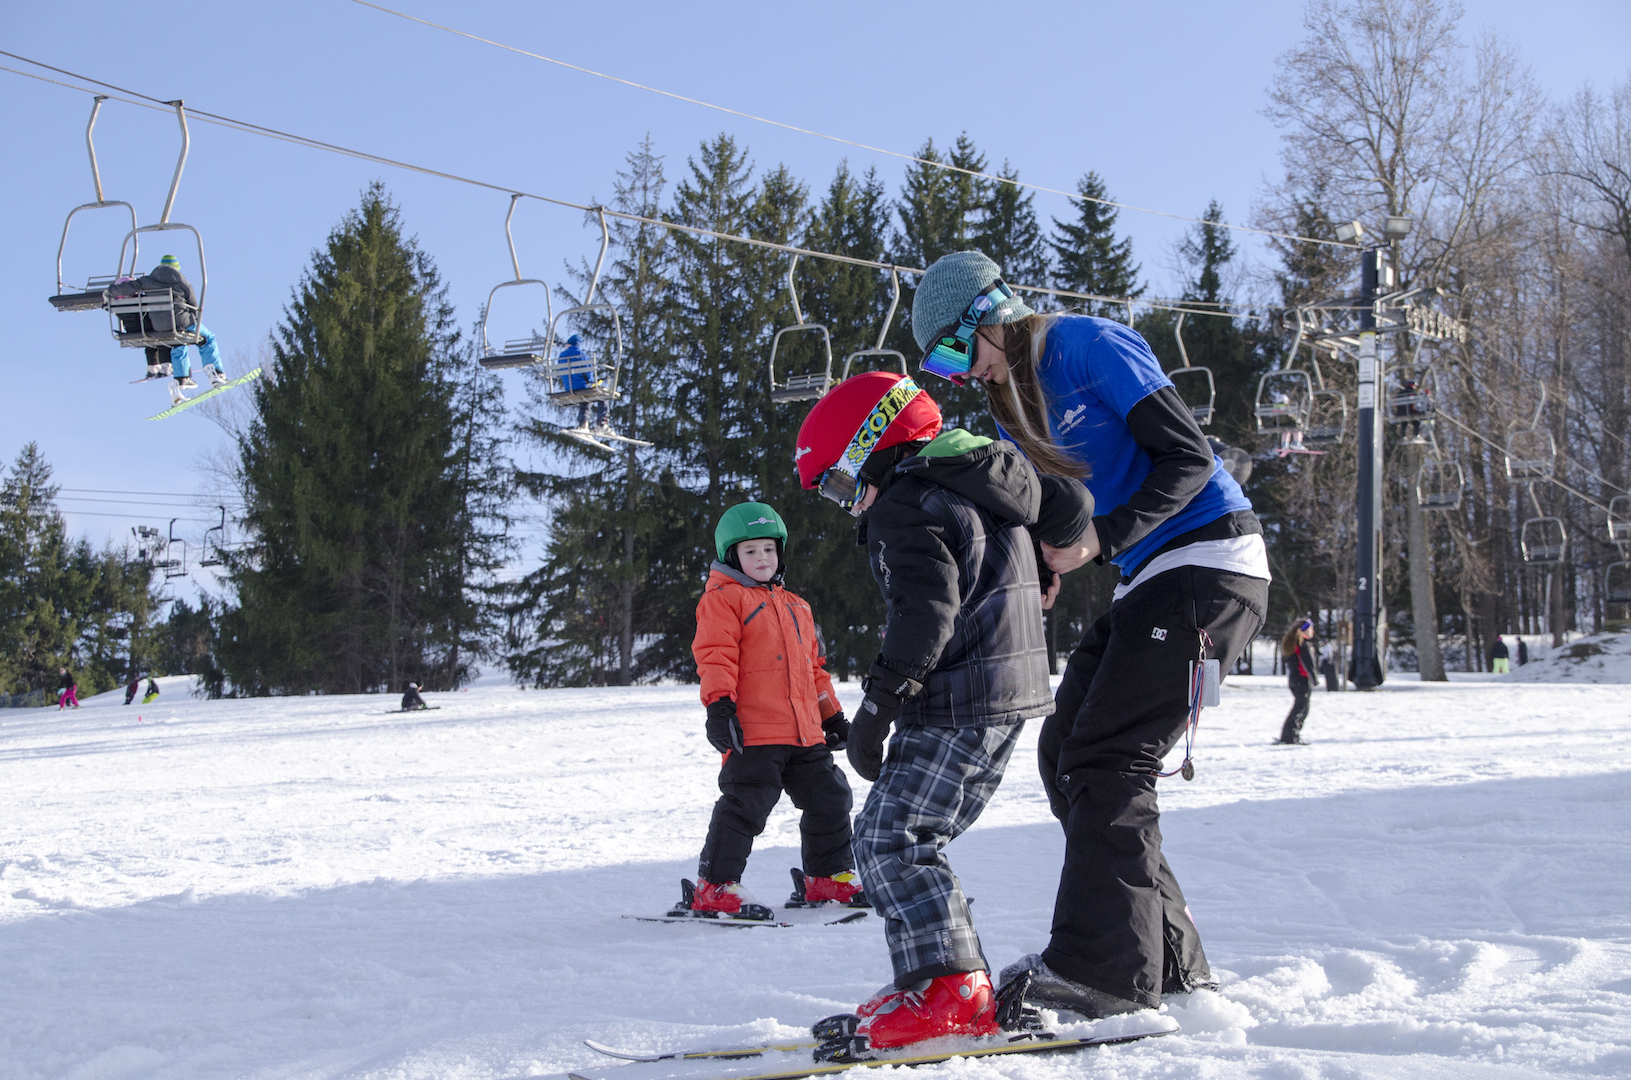 Children's Programs at Snow Trails